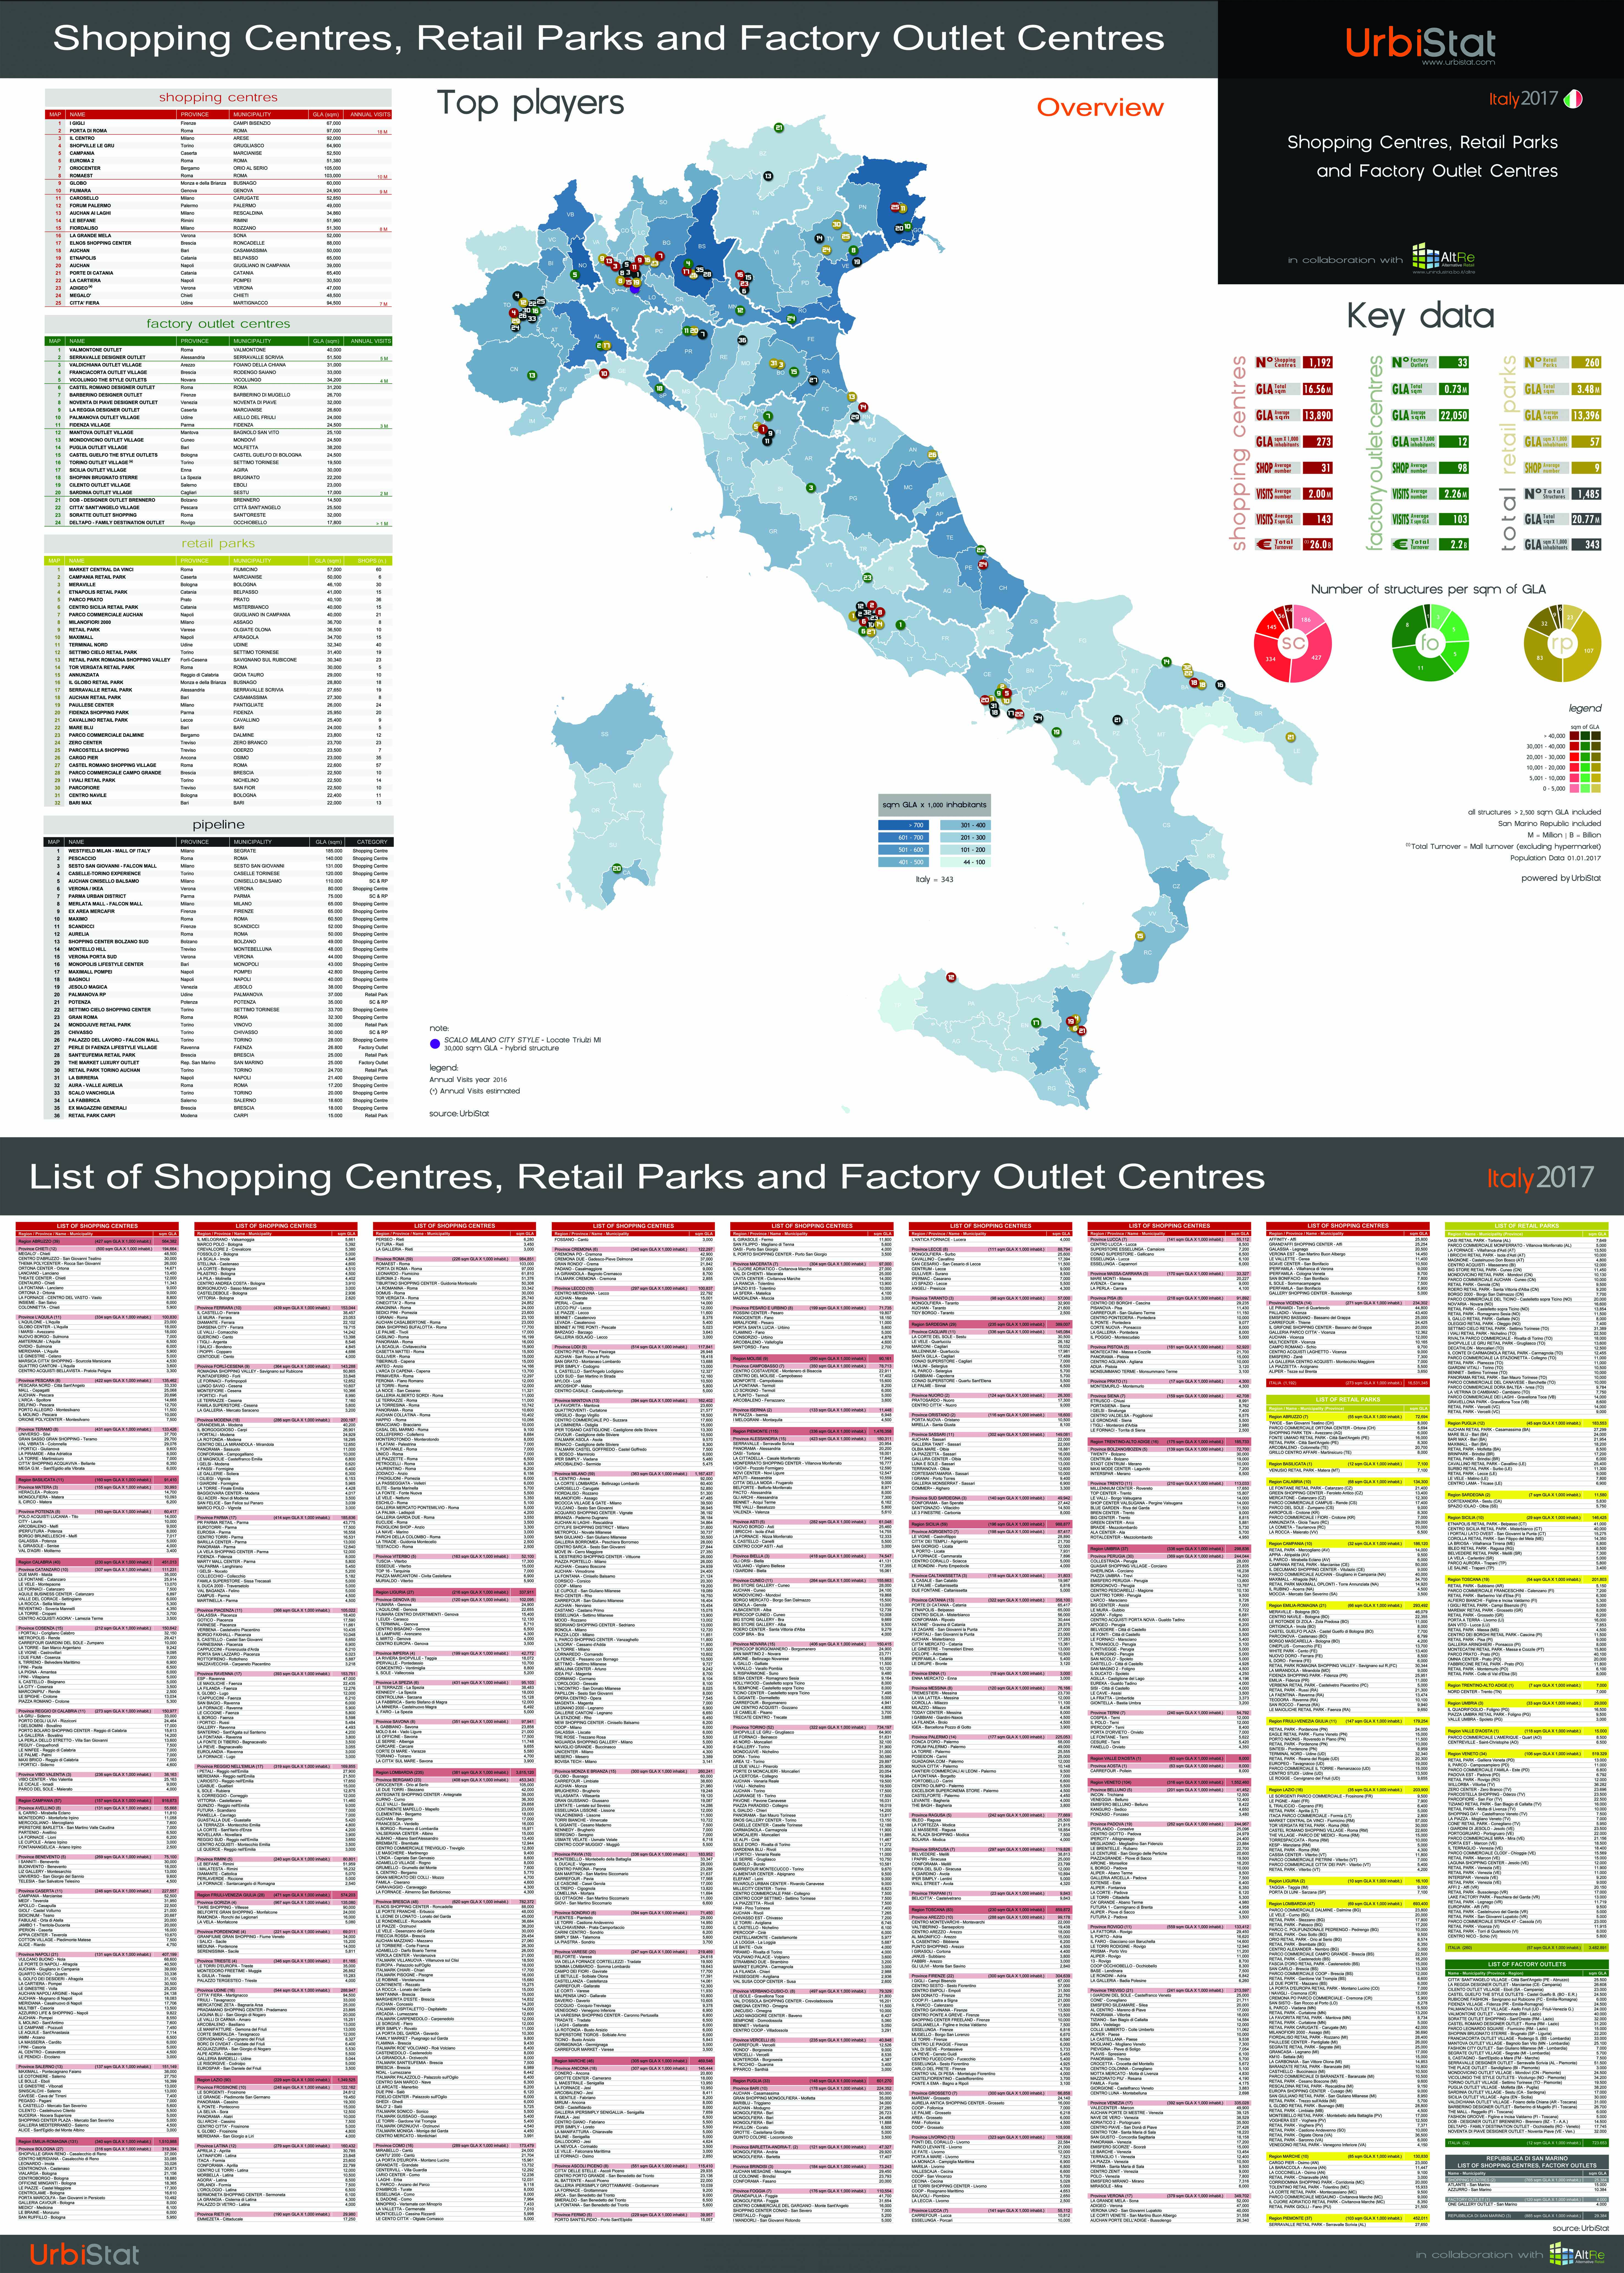 POSTER – SHOPPING CENTRES, RETAIL PARKS AND FACTORY OUTLET CENTRES Italia 2017